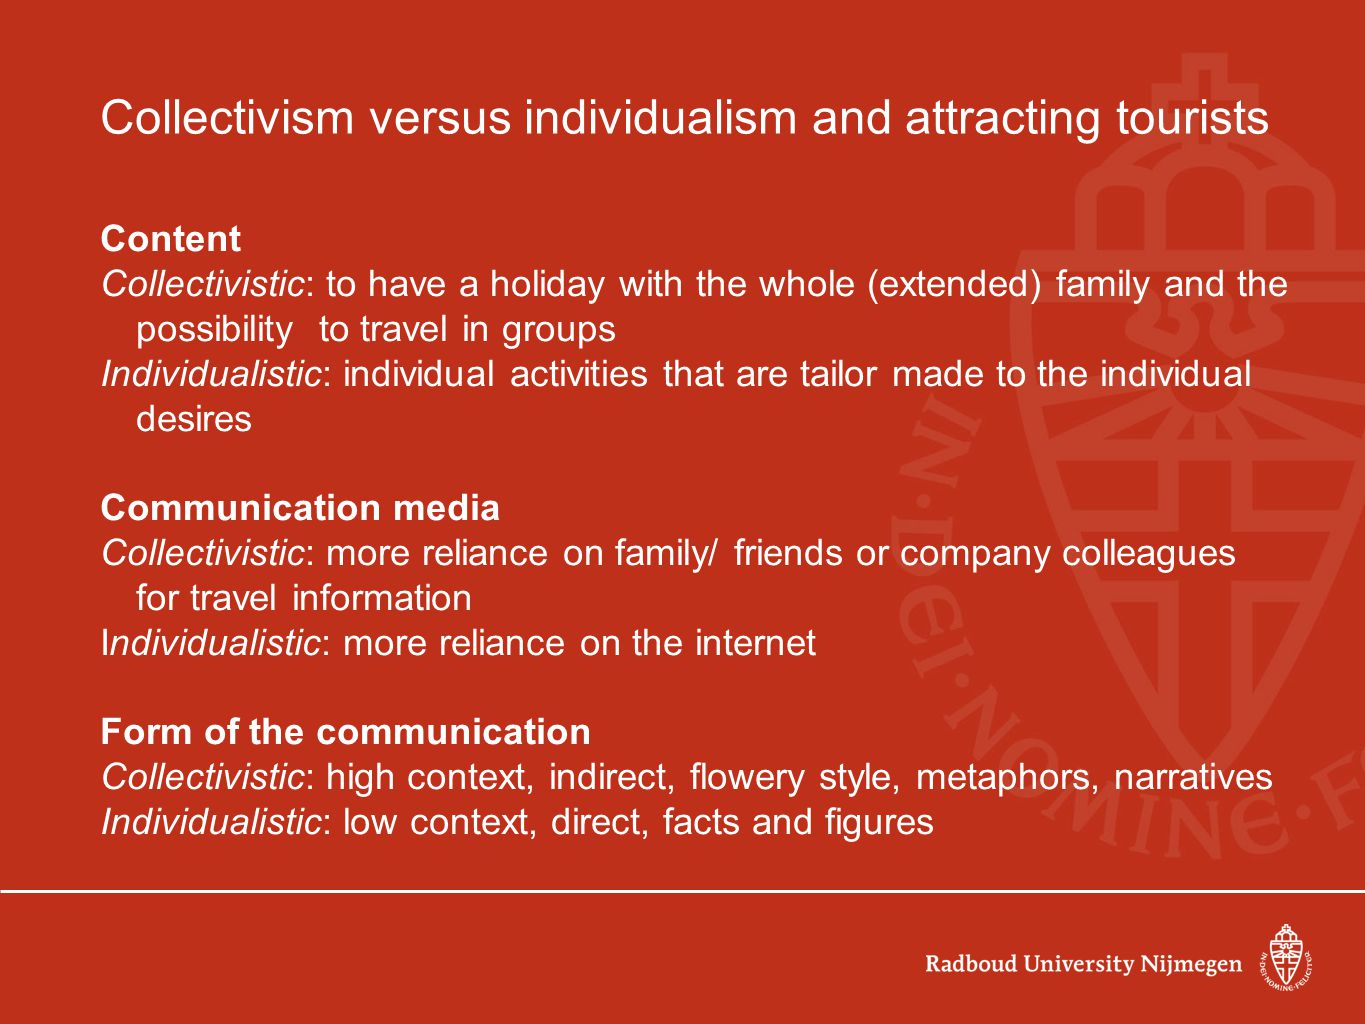 Collectivism versus individualism and attracting tourists